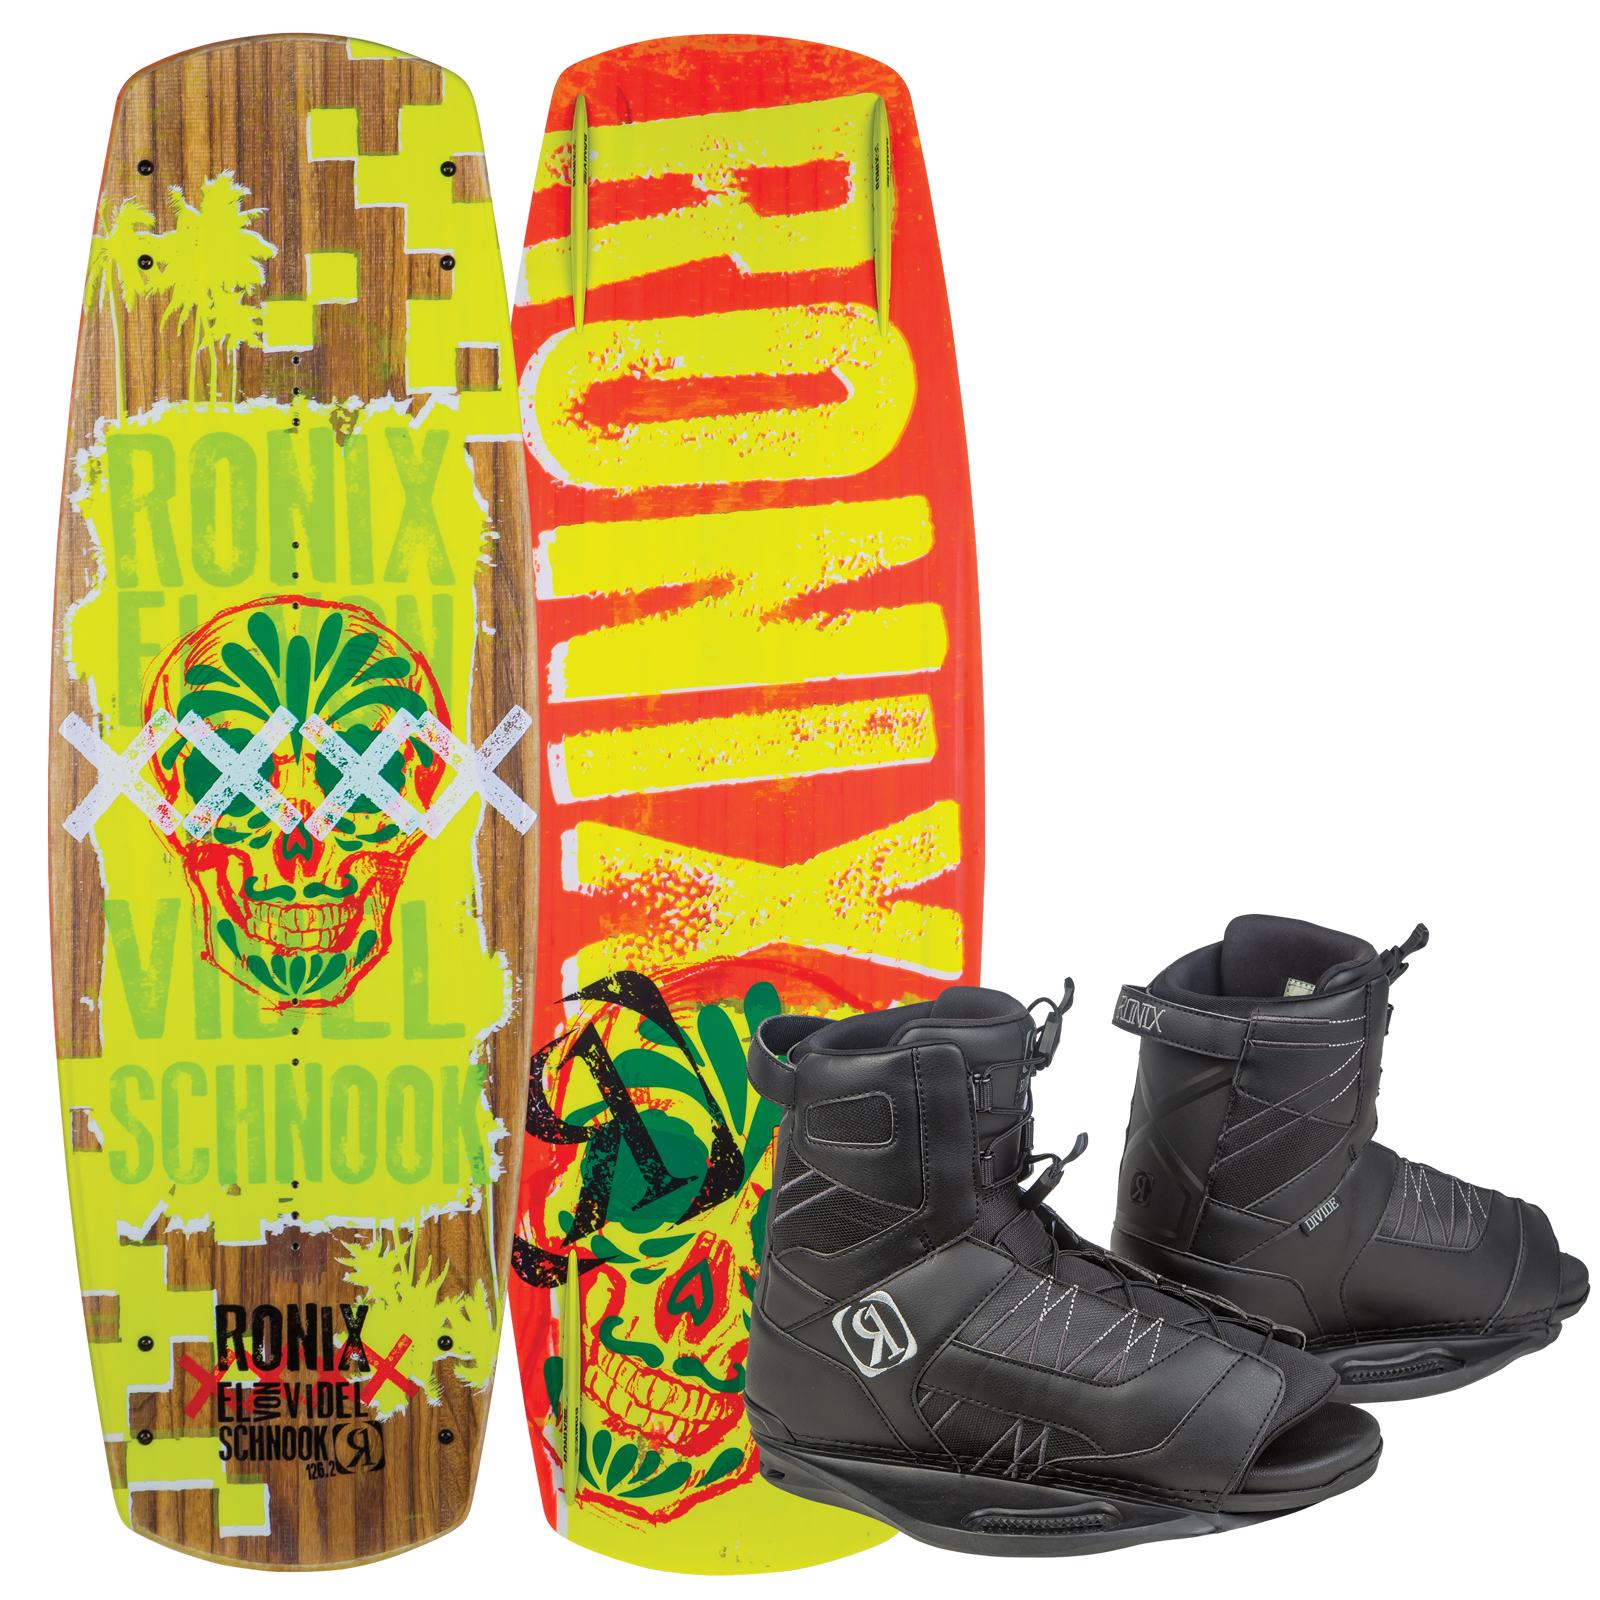 EL VON VIDEL SCHNOOK 126.2 W/ DIVIDE EU 37-41.5/US 5-8.5 PACKAGE RONIX 2017